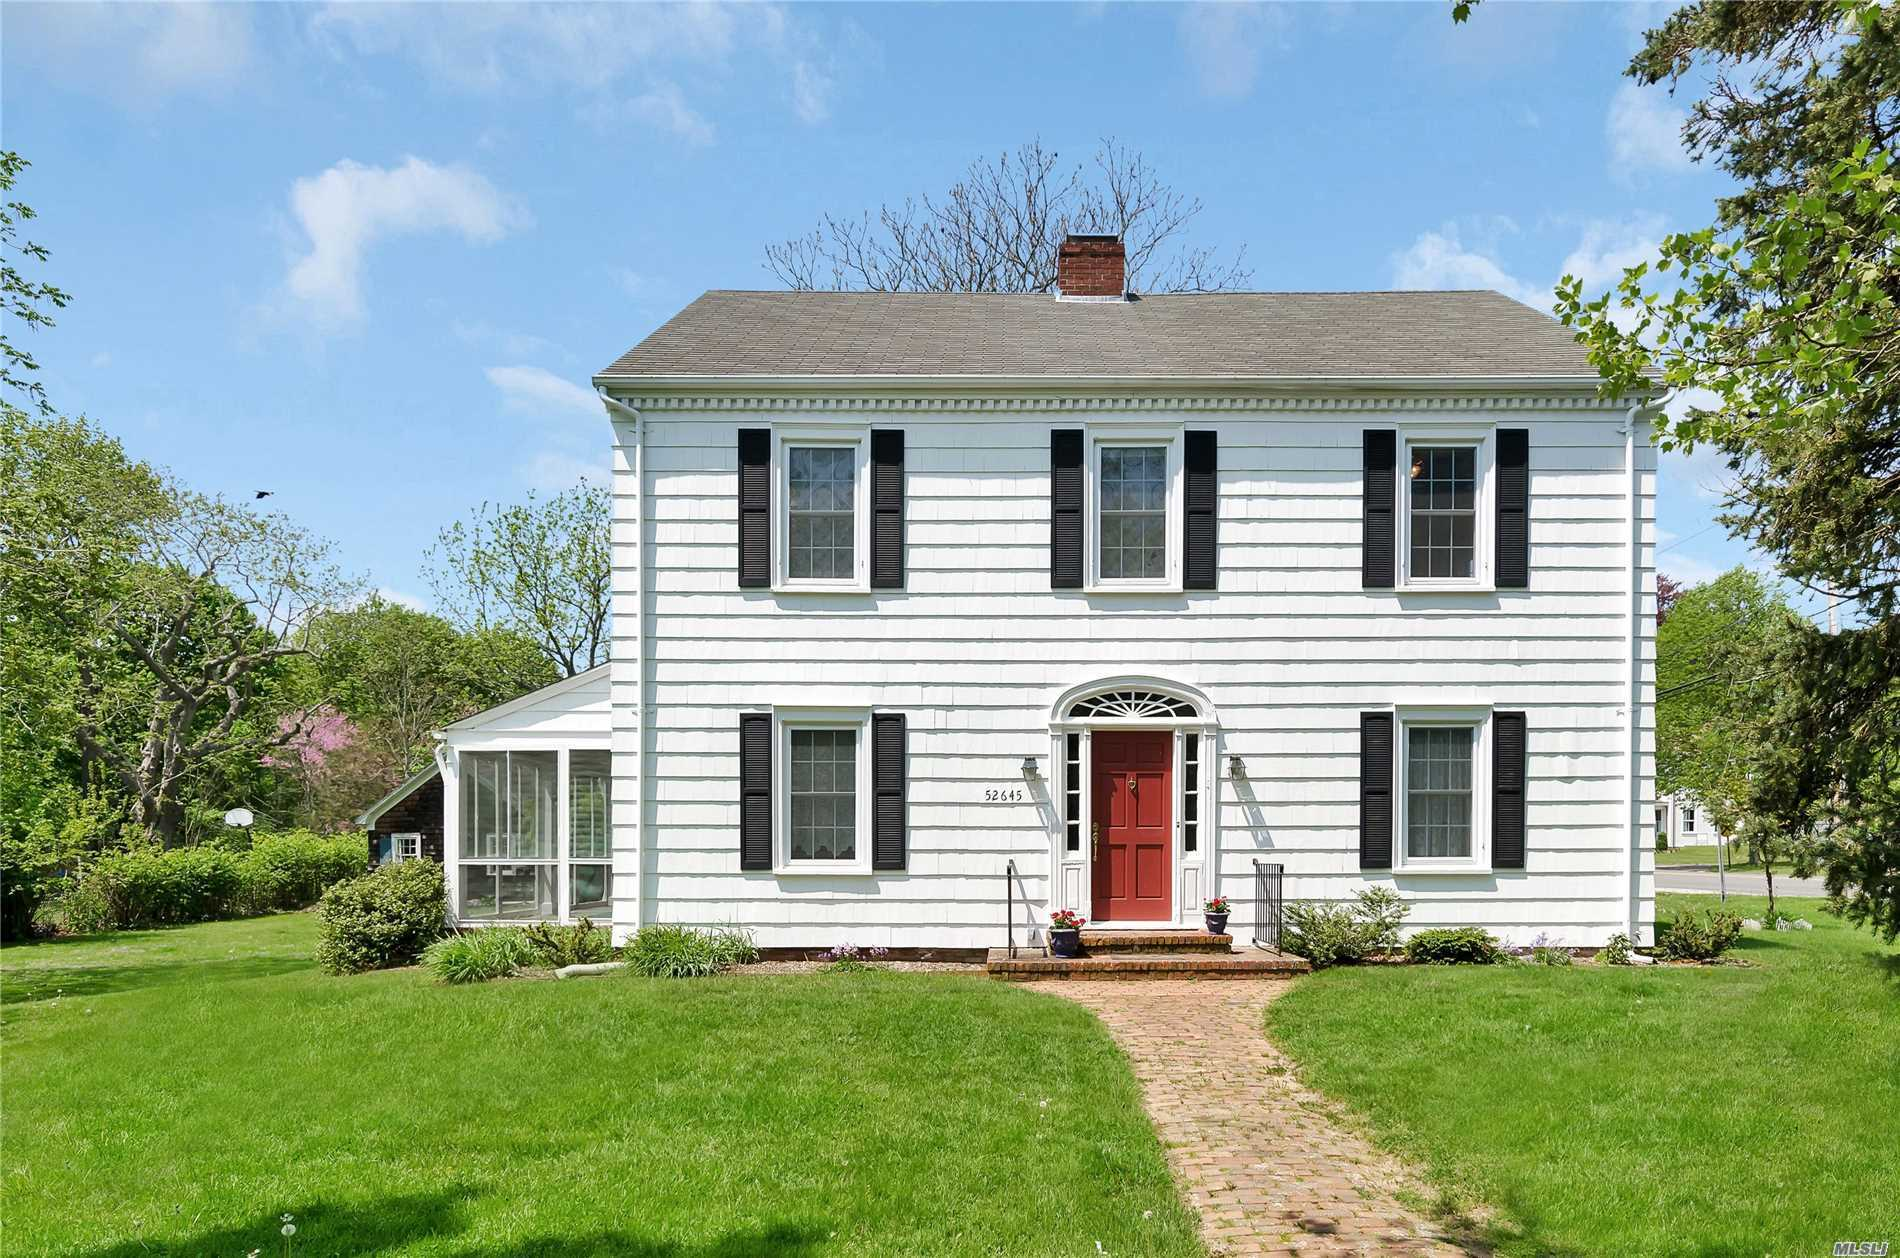 This Classic Center Hall Colonial Offers The Opportunity For Gracious Living With A Center Hall Winding Staircase, Lr W/Fpl, Fdr, Eik, Office/Br, 4 Bedrooms, Full Walk-Up Attic, Screened Porch.  Street Gas, Public Water. In Town Location - Walk To All. Zoned Residential Office. All On Approximately 1/2 Acre.